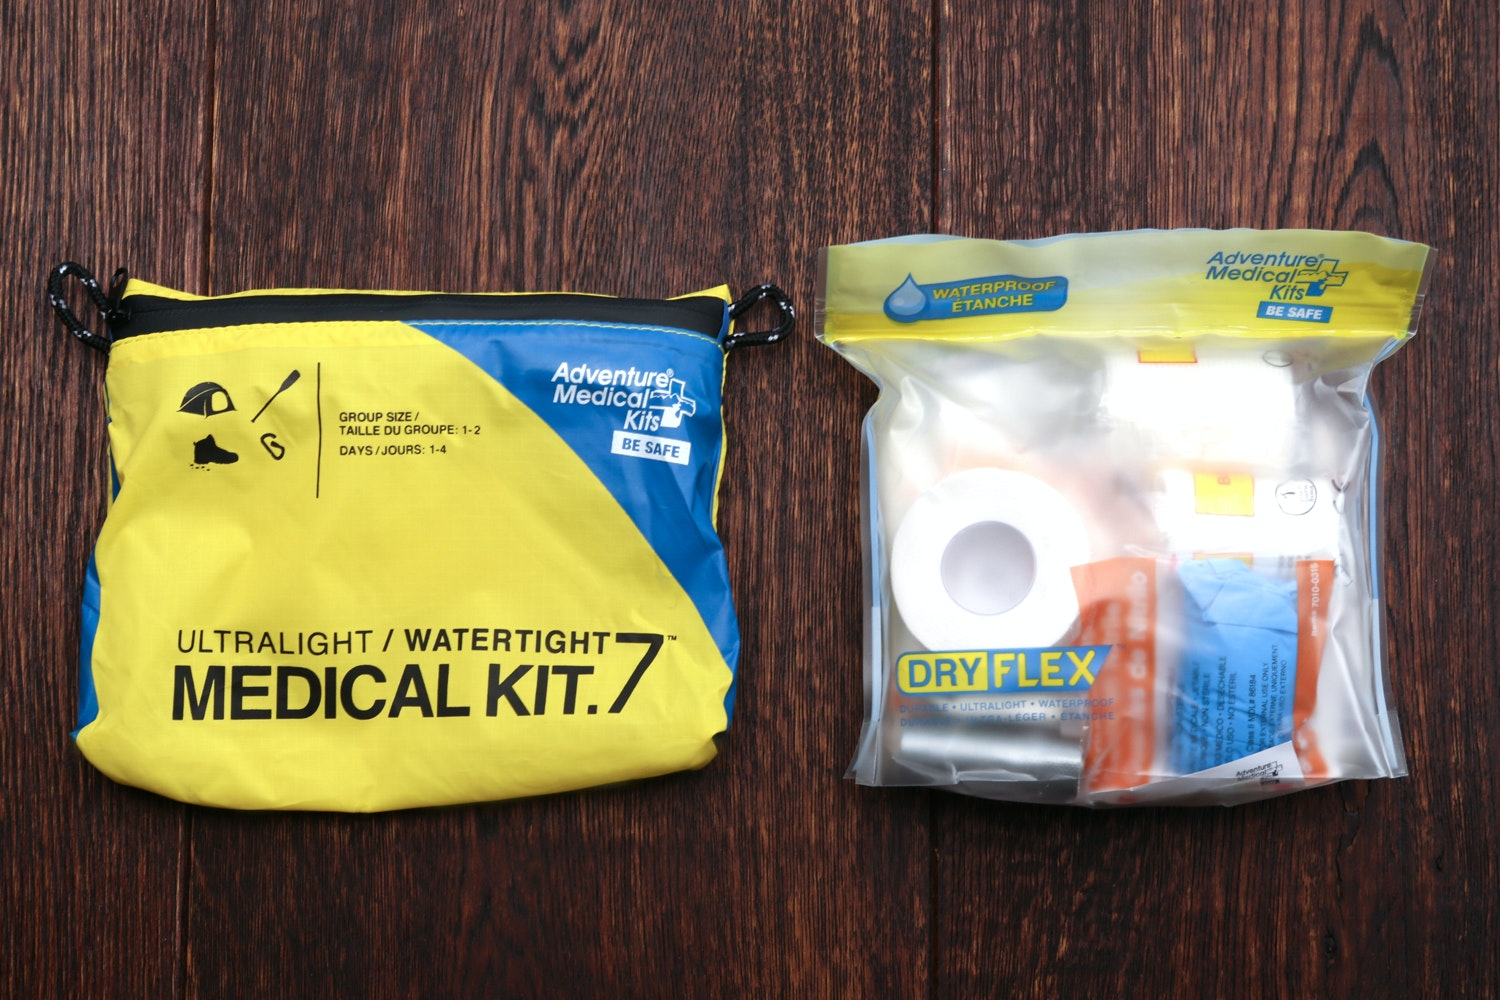 Adventure Medical Kits Ultralight Watertight Kits